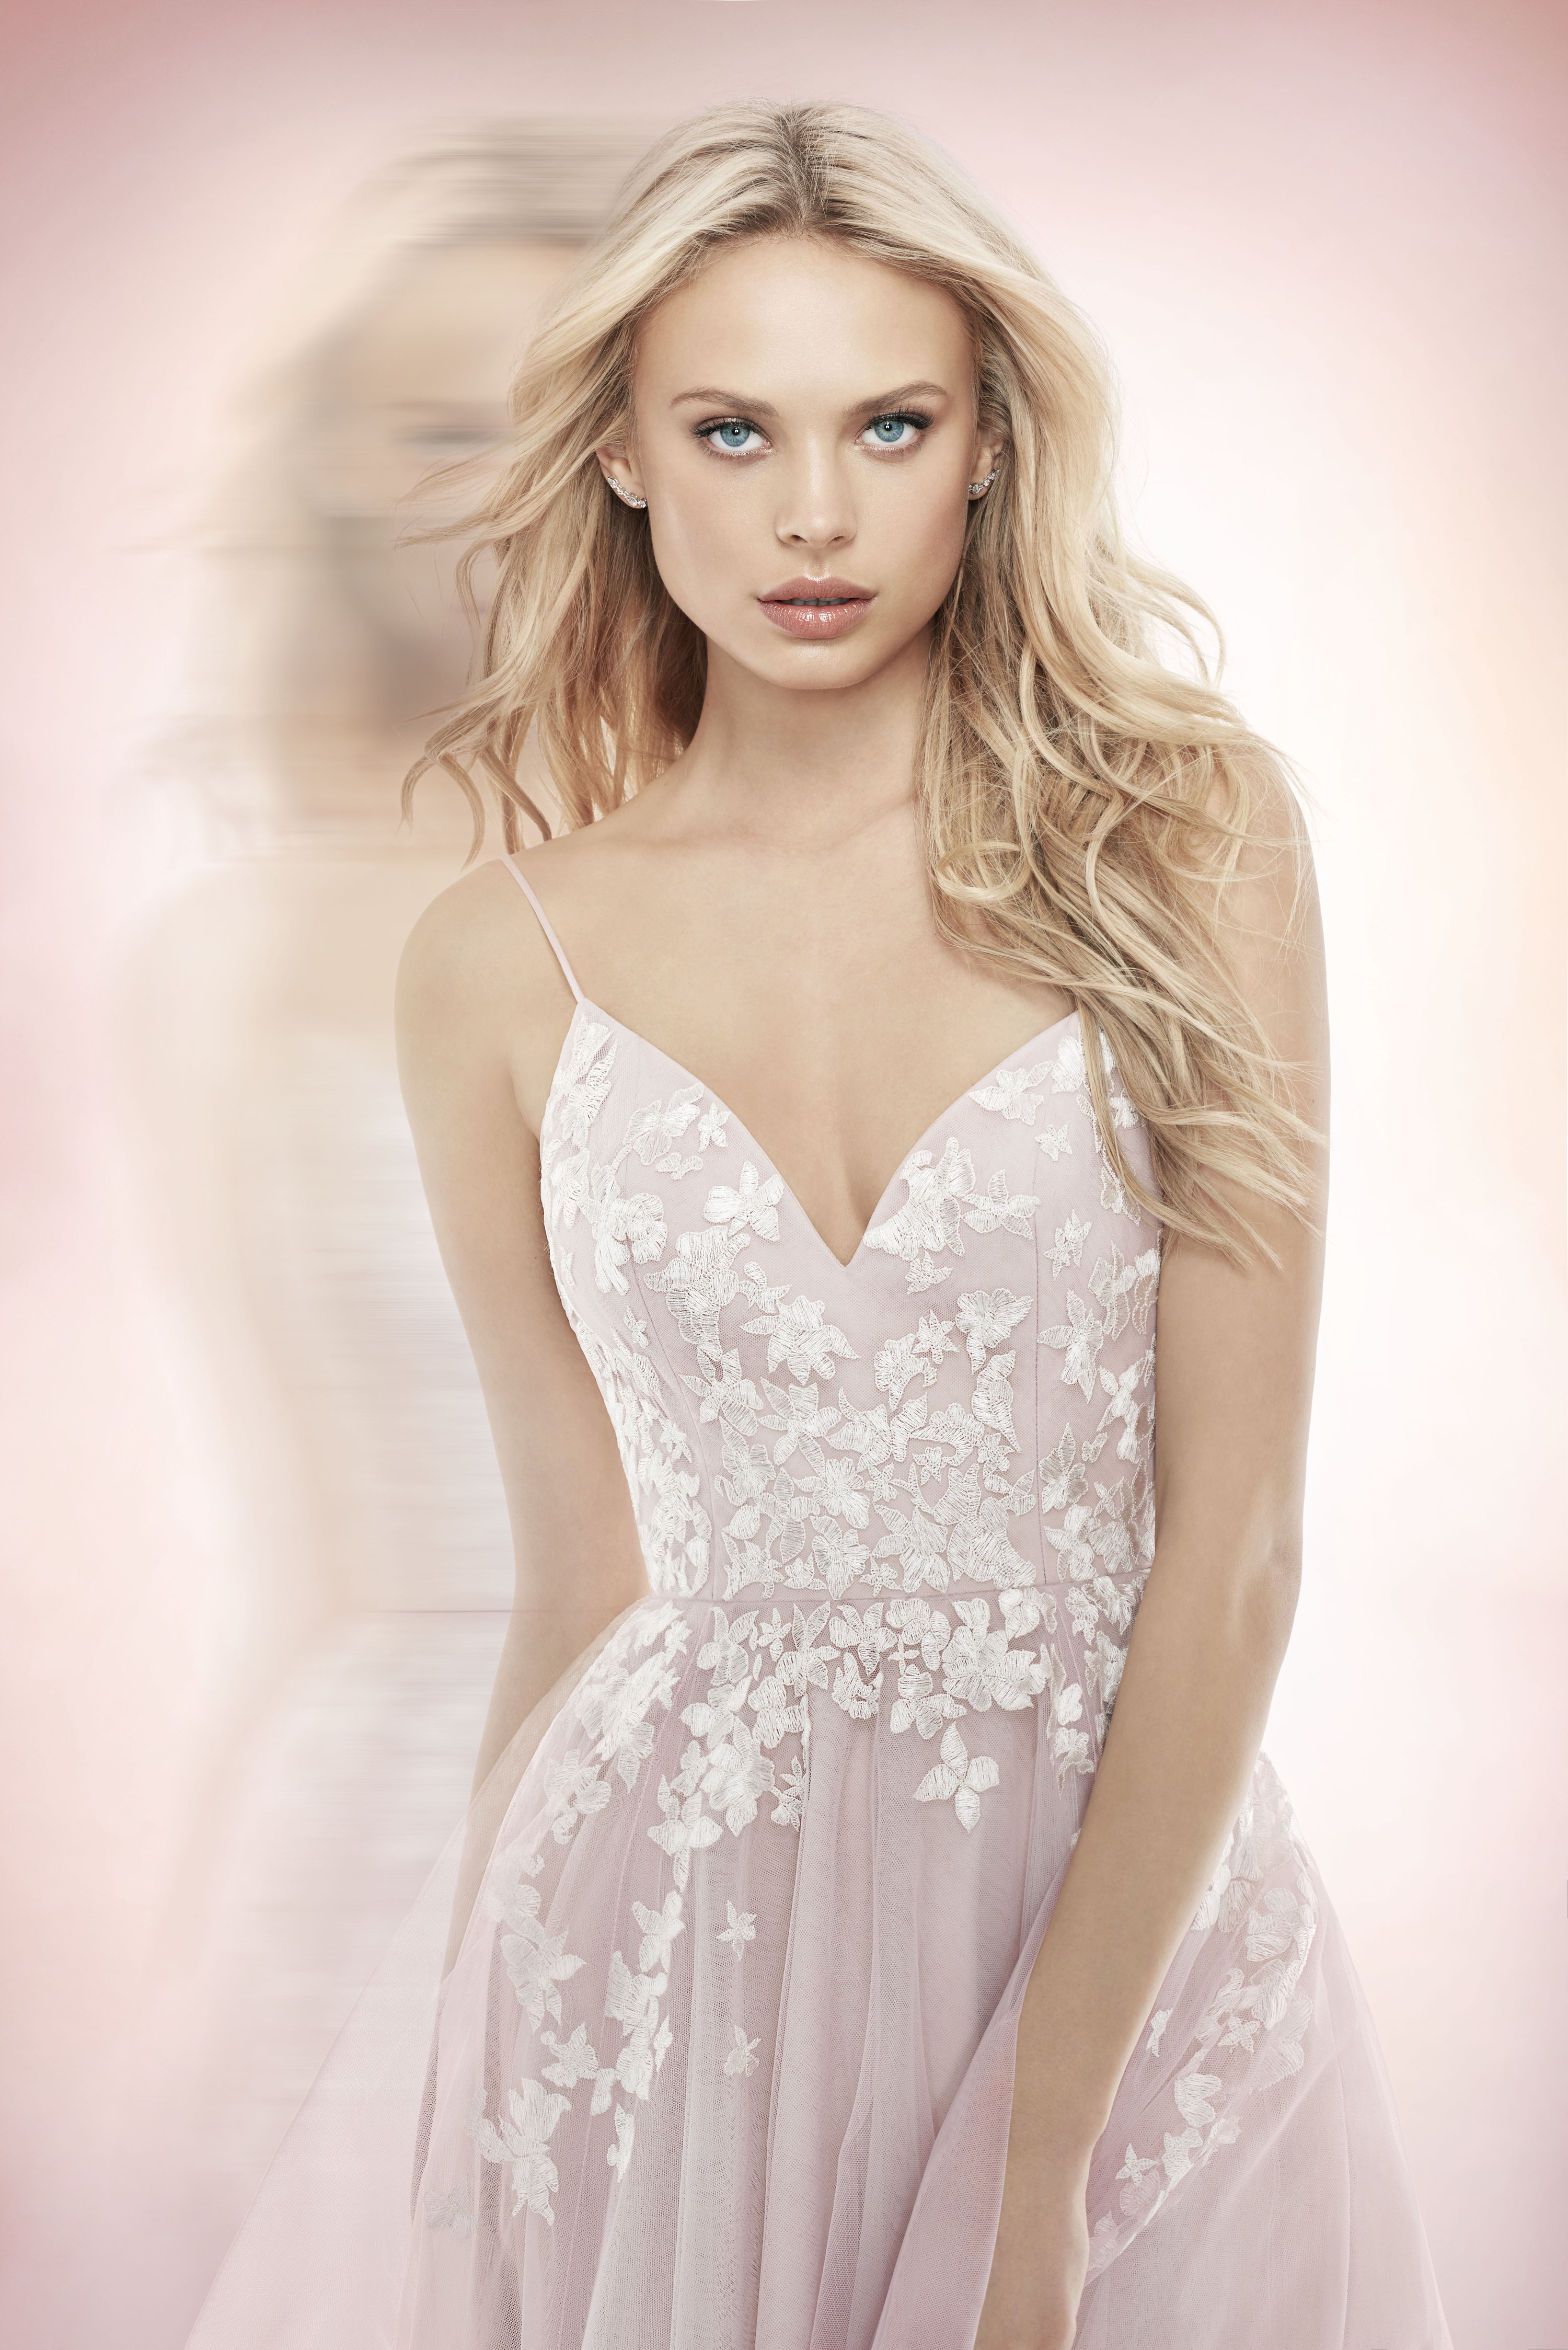 Bridal Gowns And Wedding Dresses By Jlm Couture Style 1709 Denver